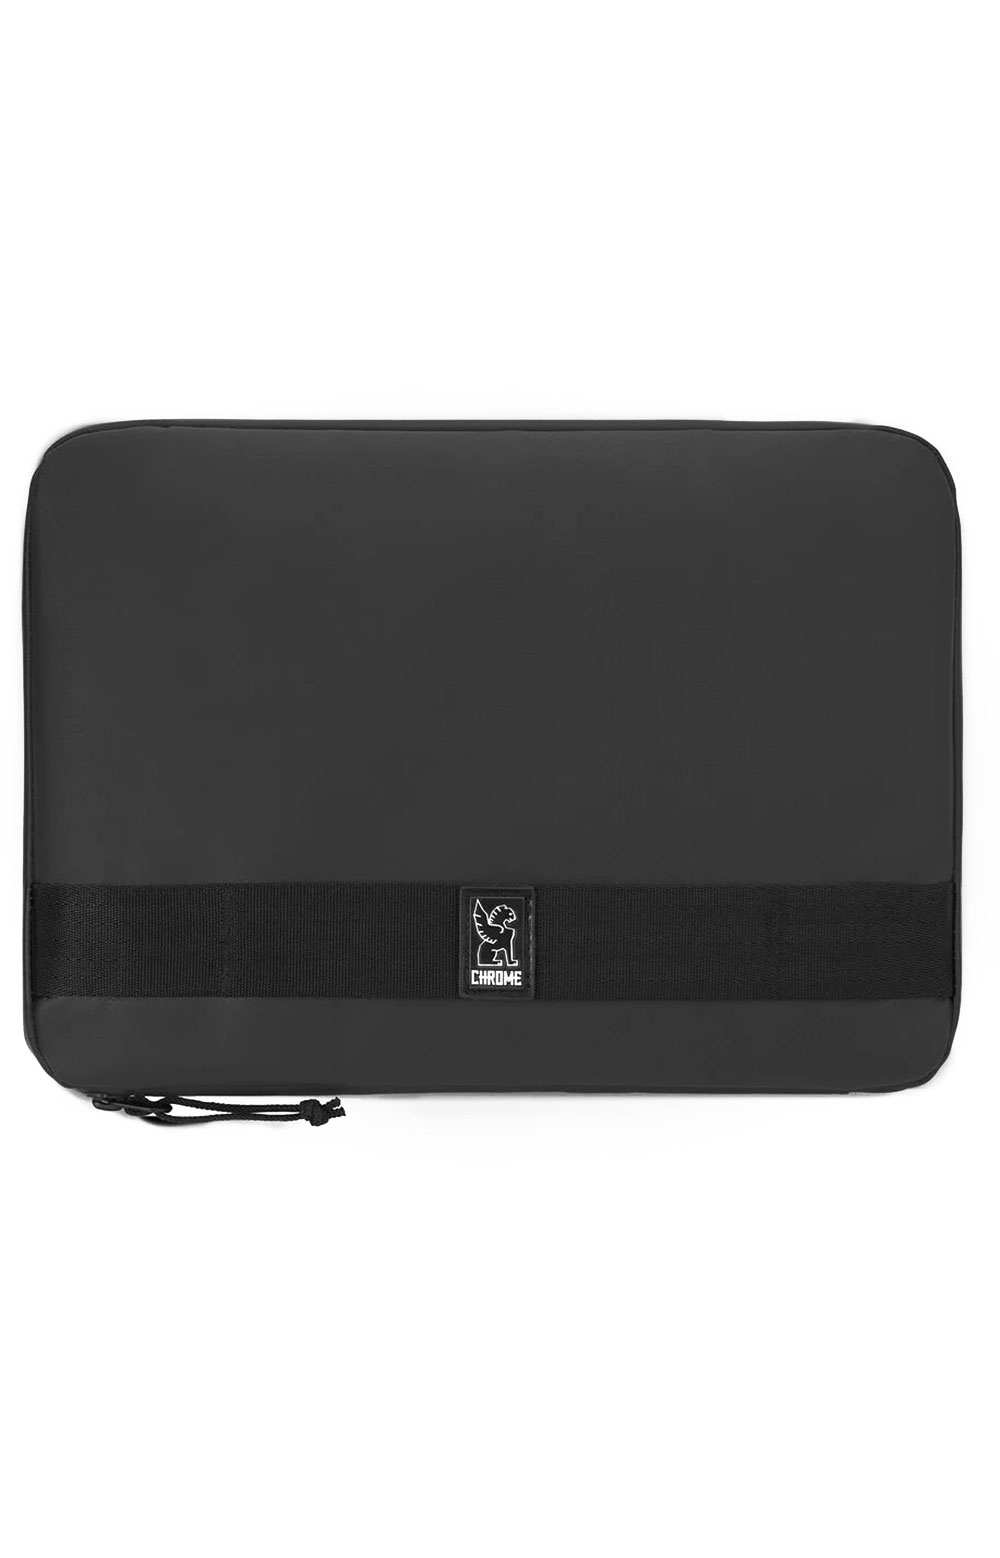 (AC-188-BK) Medium Laptop Sleeve - Black